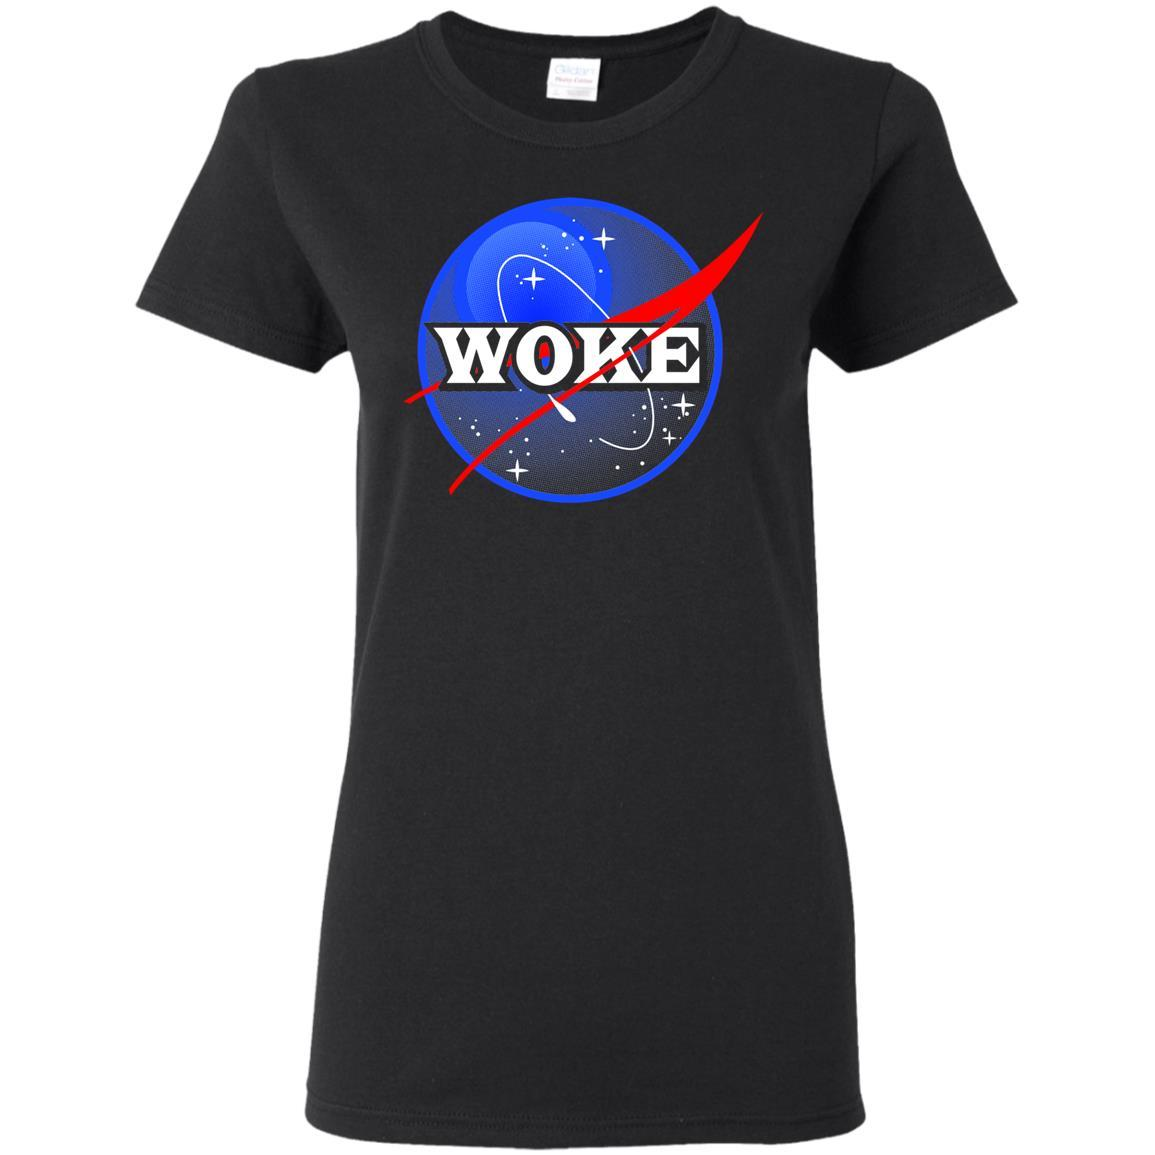 T-Shirts - Woke Ladies Tee